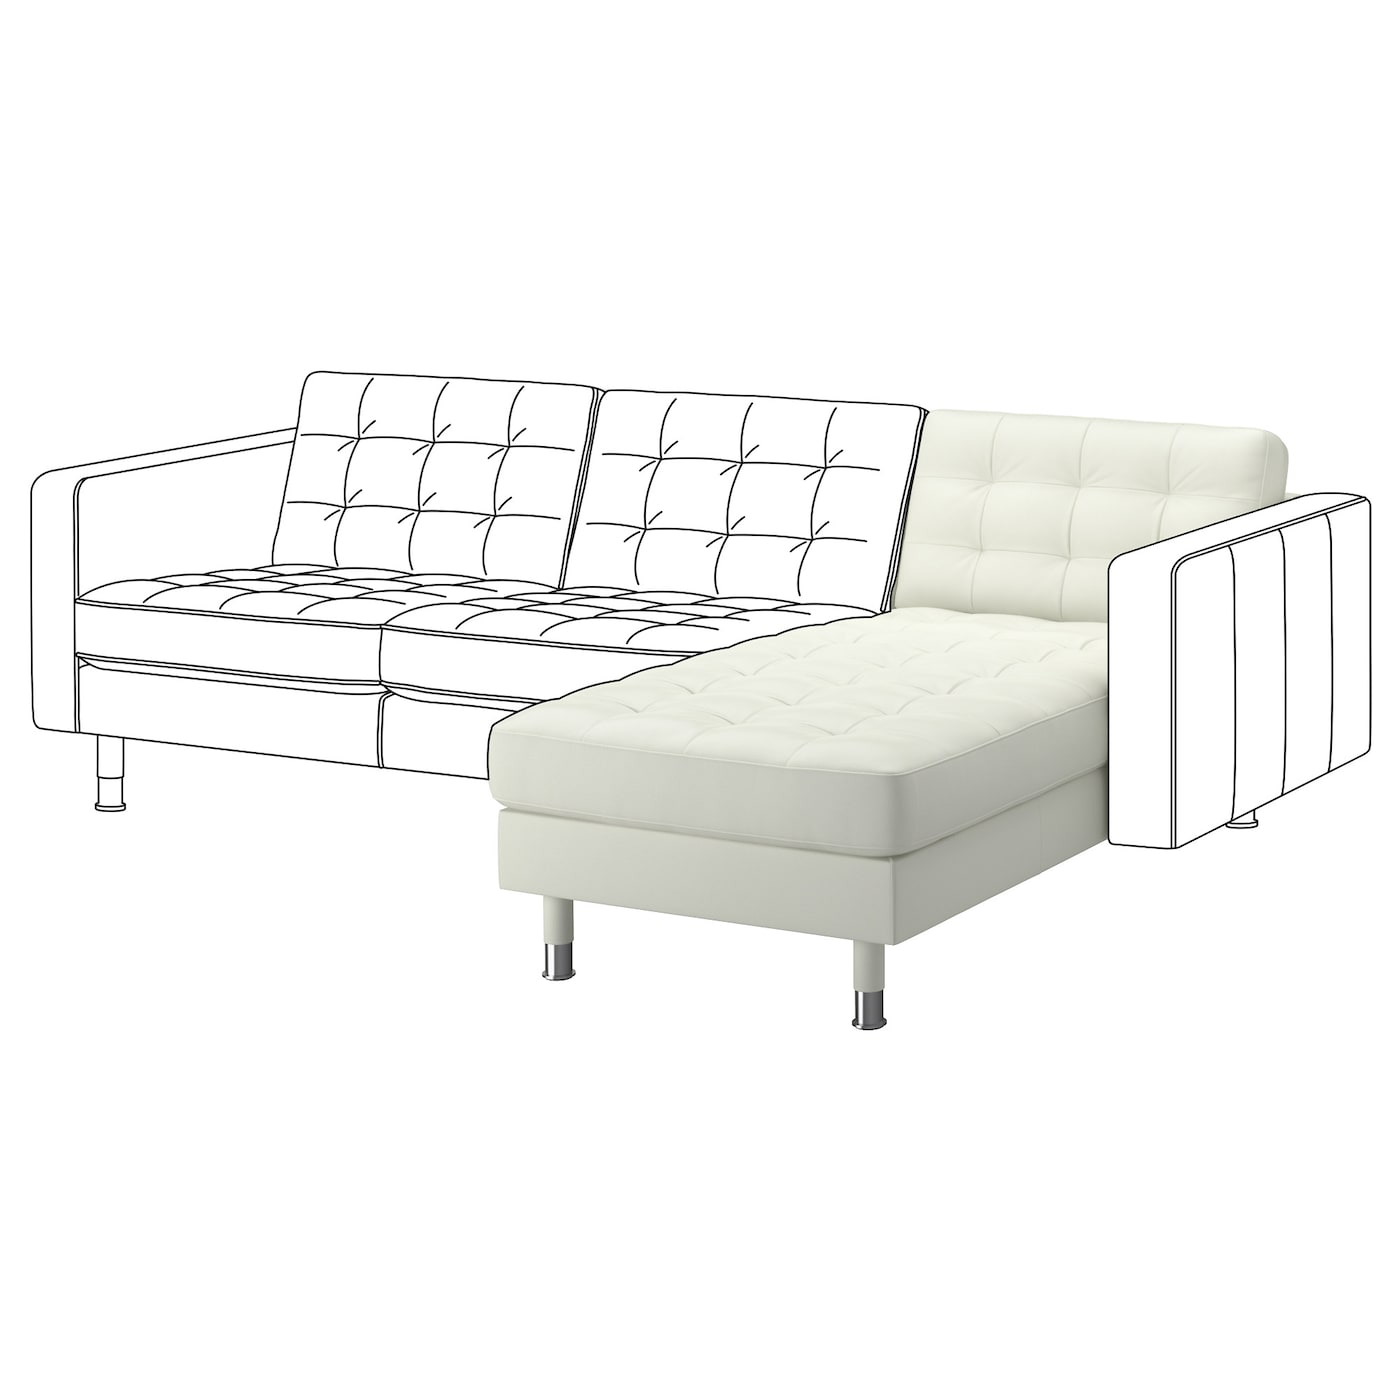 Landskrona chaise longue add on unit grann bomstad white - Chaise longue jardin ikea ...